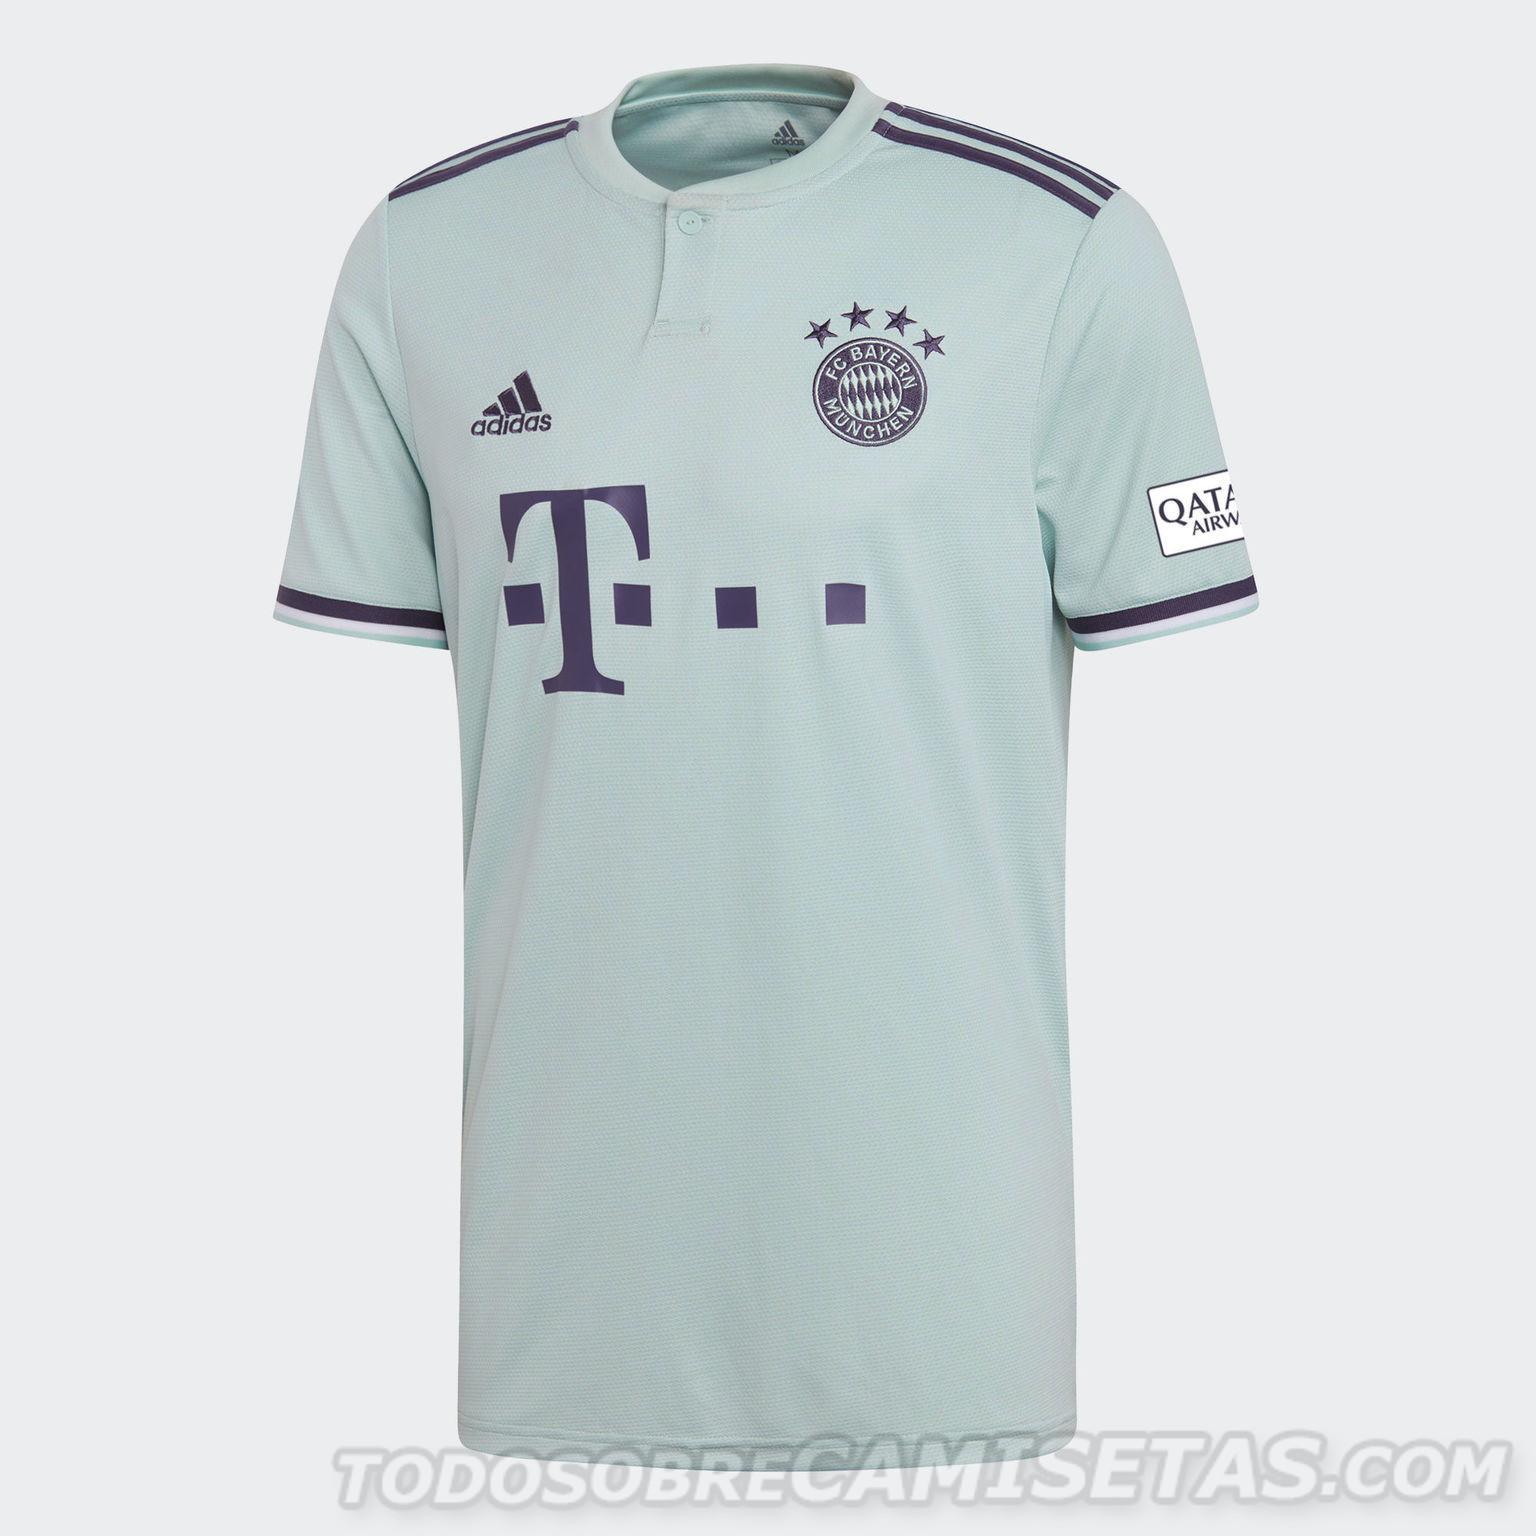 Bayern-Munich-2018-19-adidas-new-away-kit-3.jpg